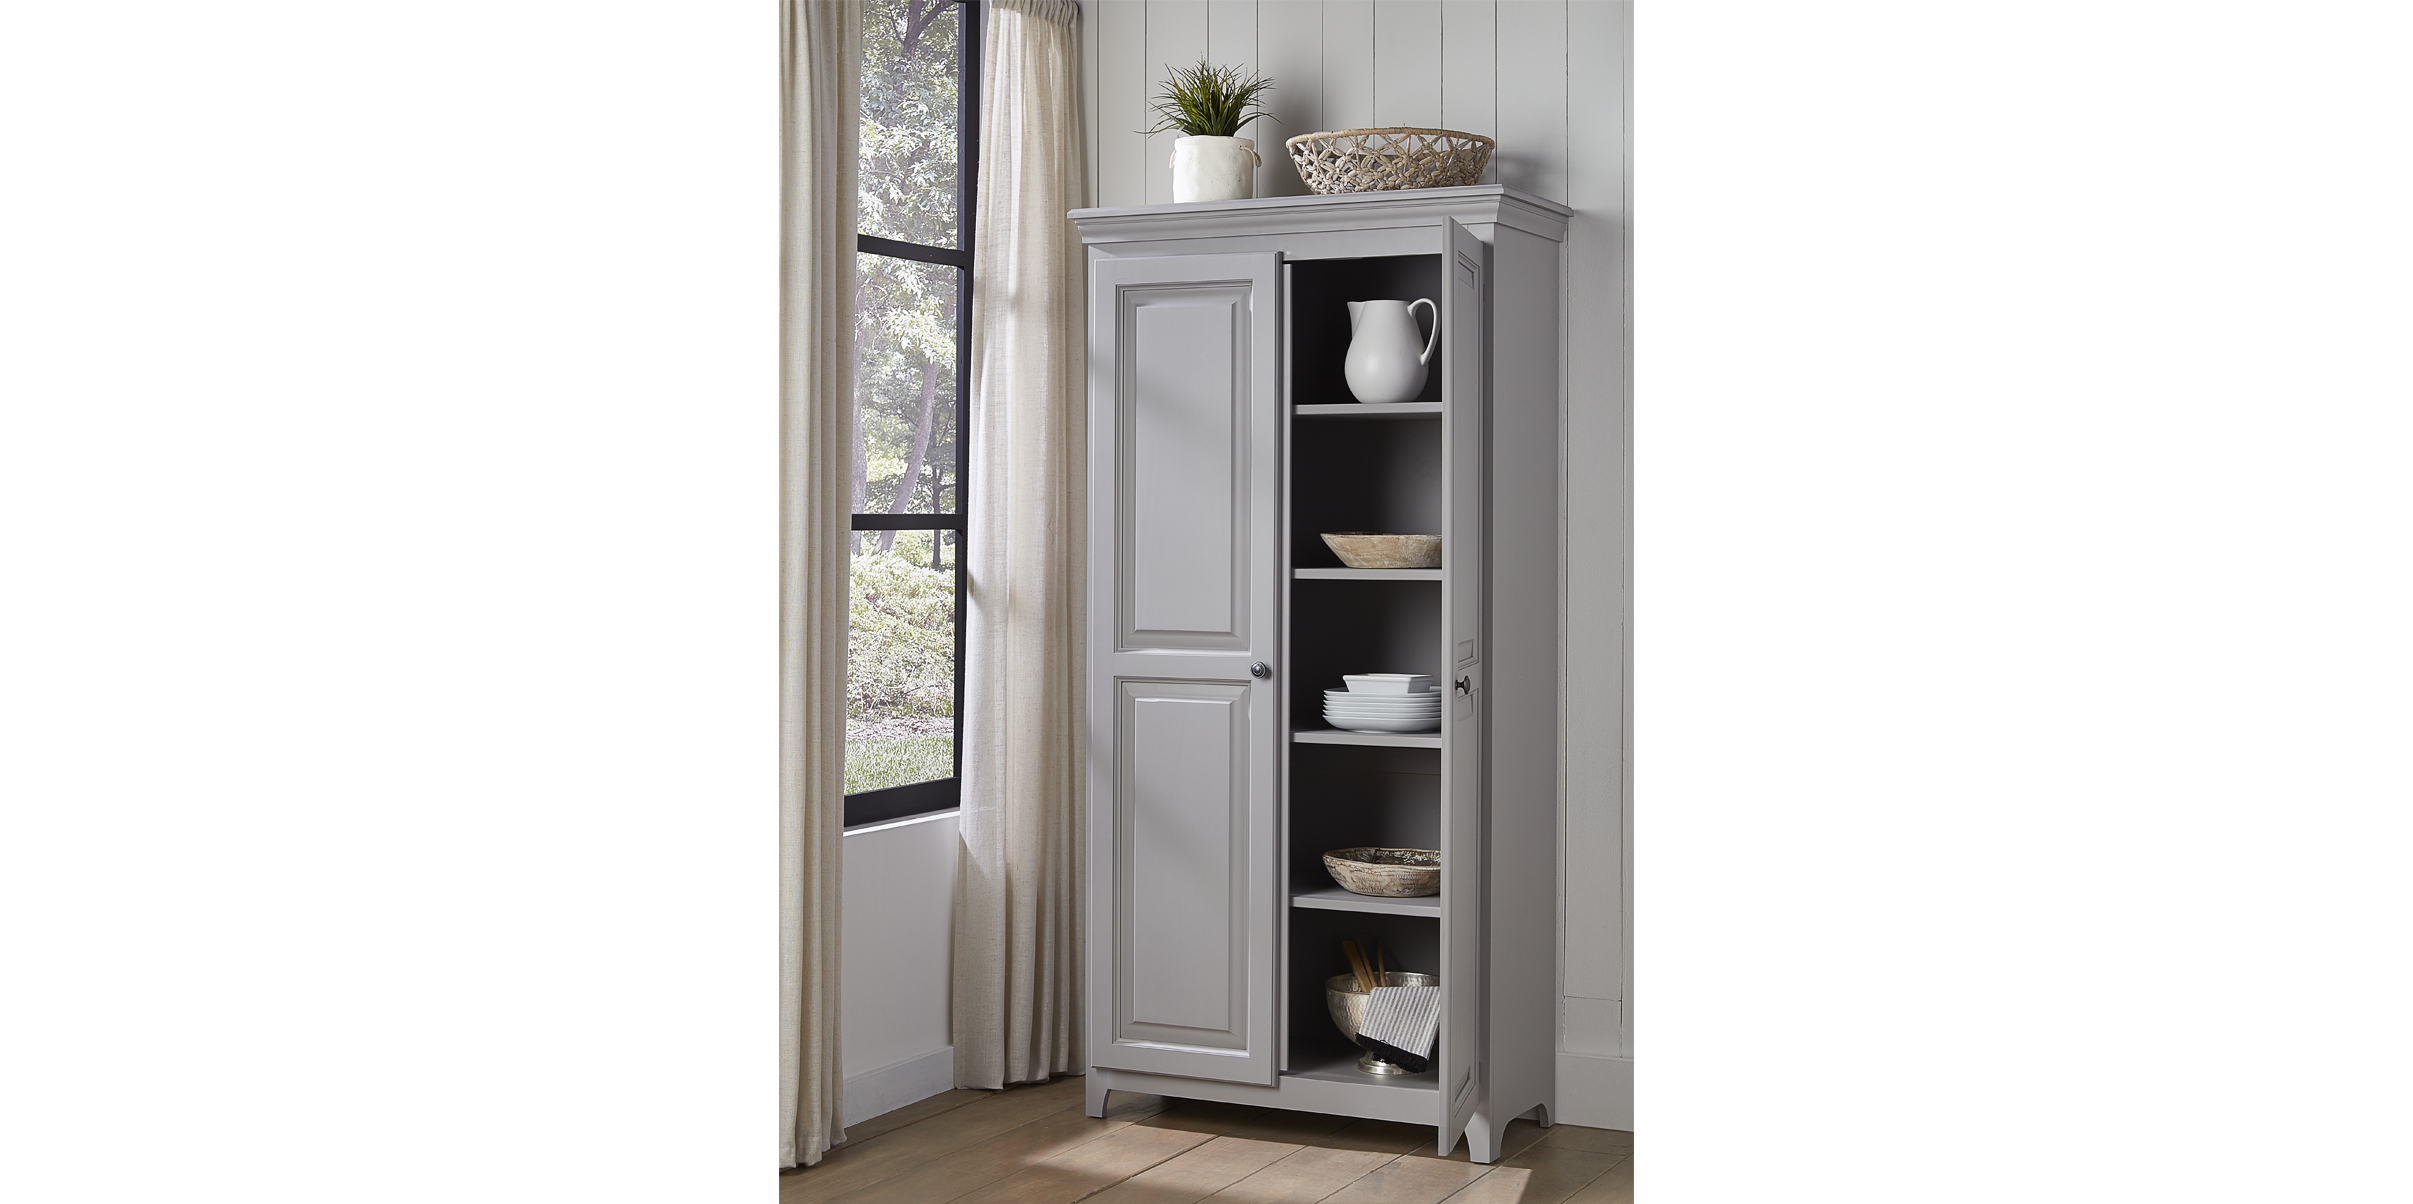 Pantries & Cabinets